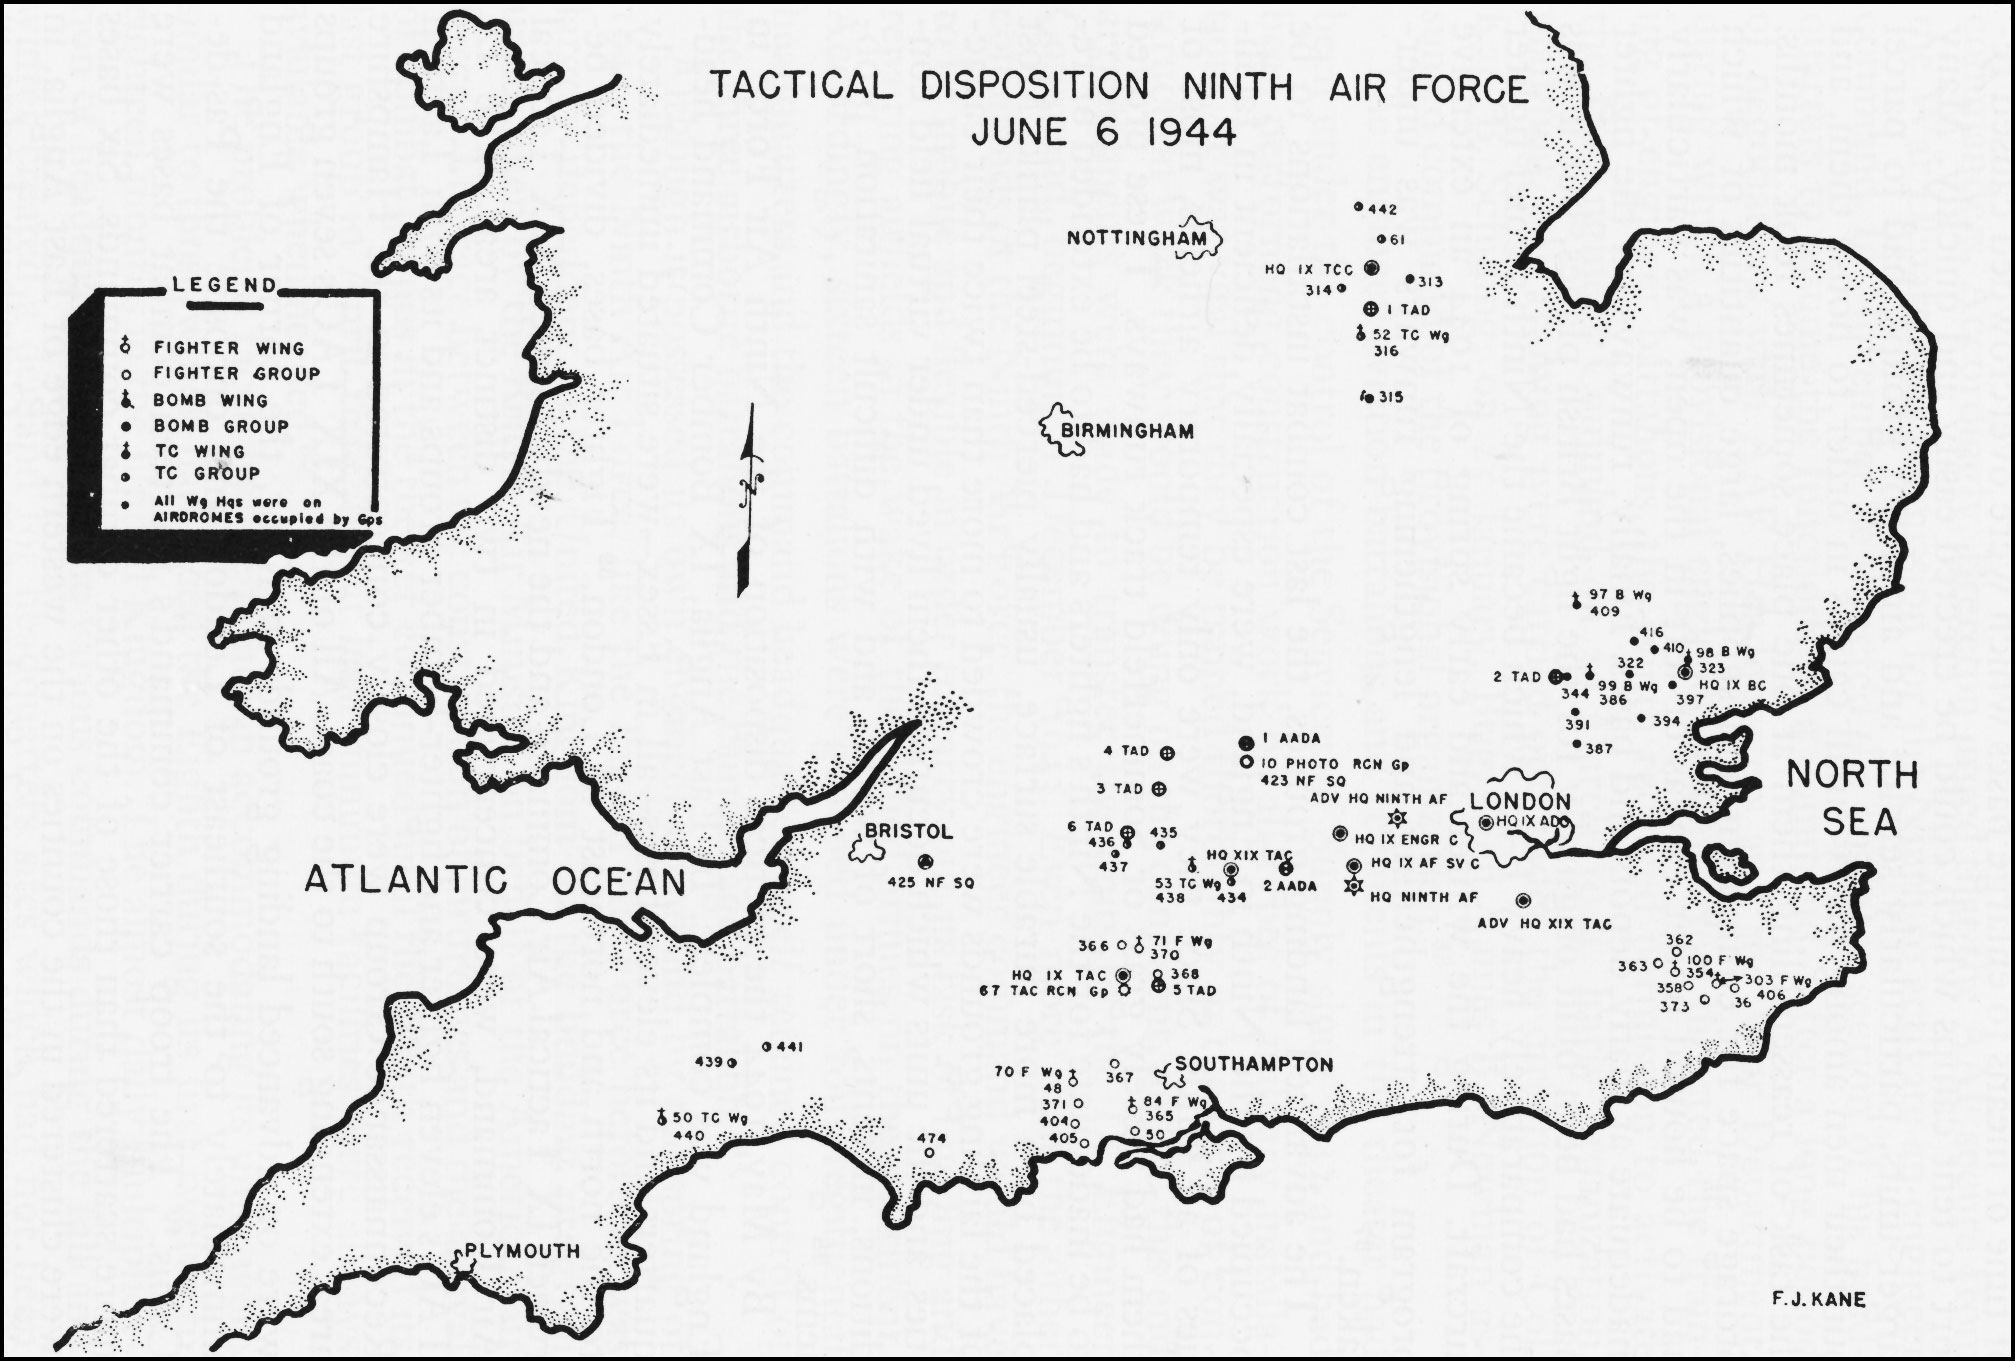 Air Force Bases In England Map.Hyperwar Army Air Forces In World War Ii Volume Iii Europe